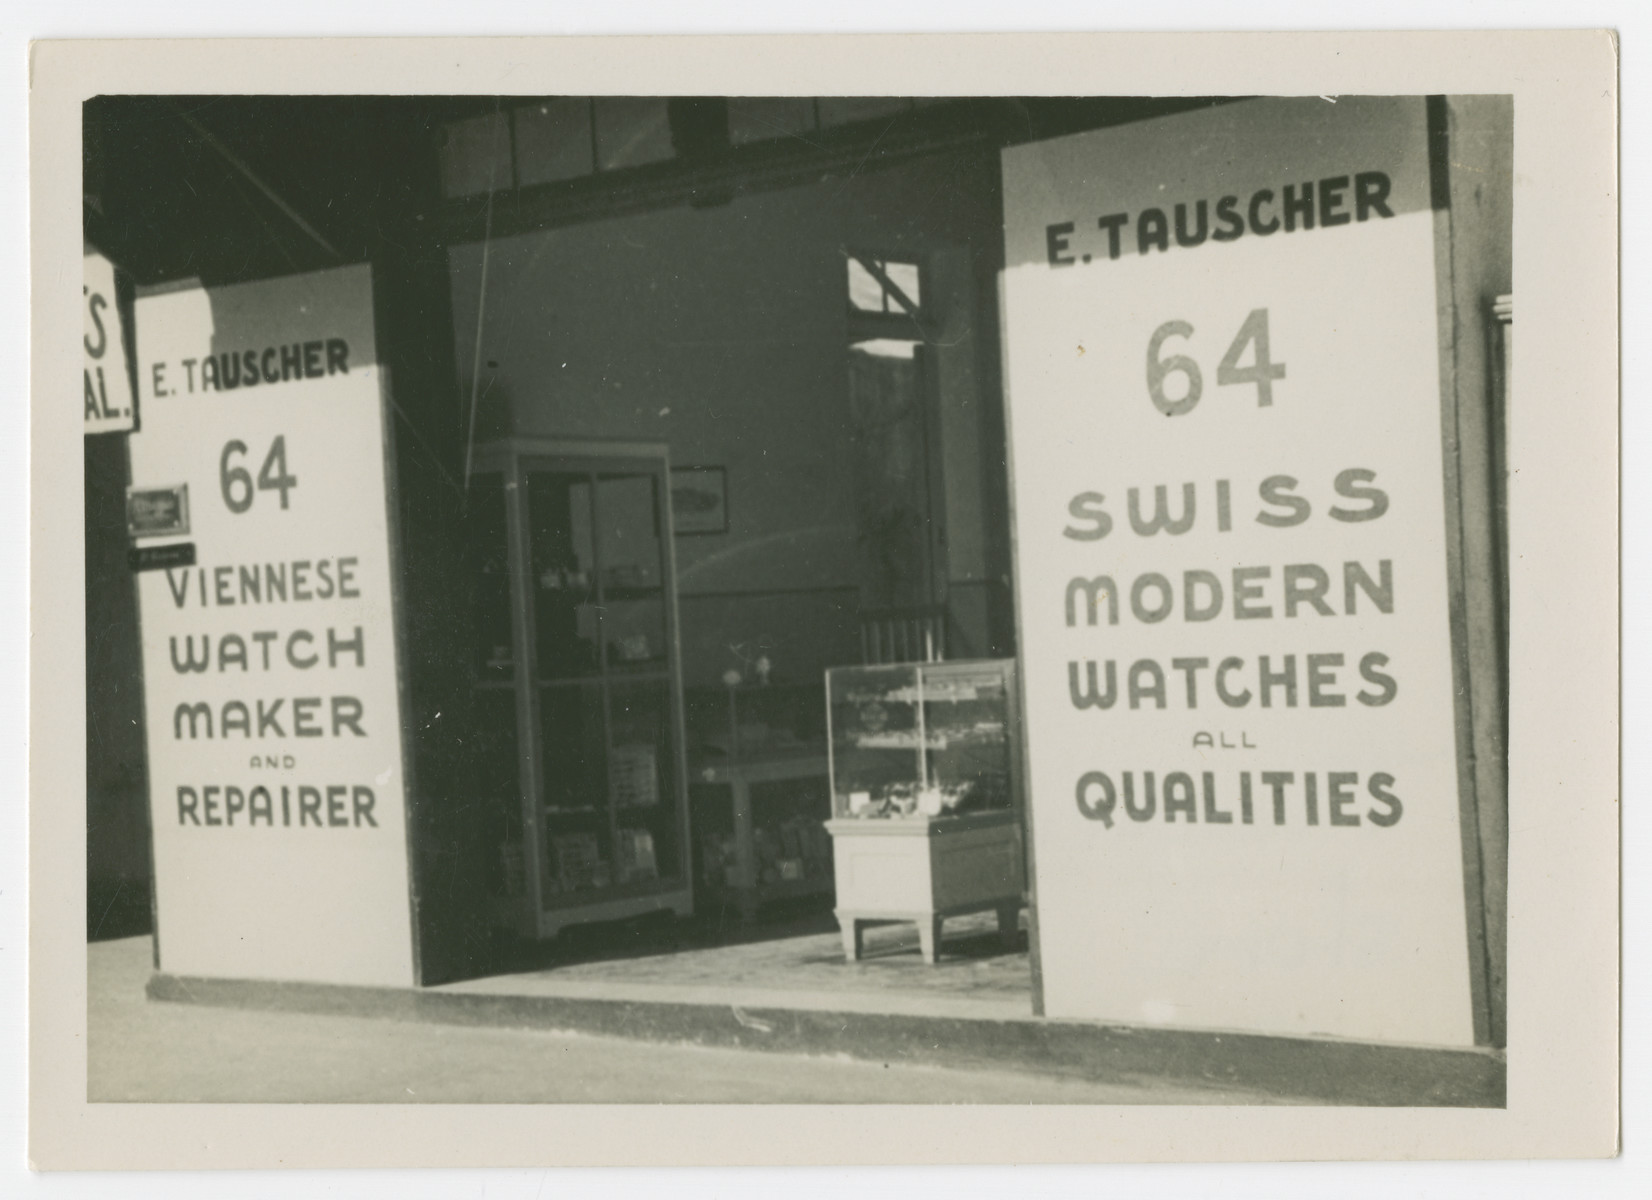 Exterior view of the watch store belonging to Erich Tauscher, a Jewish refugee in Trinidad.